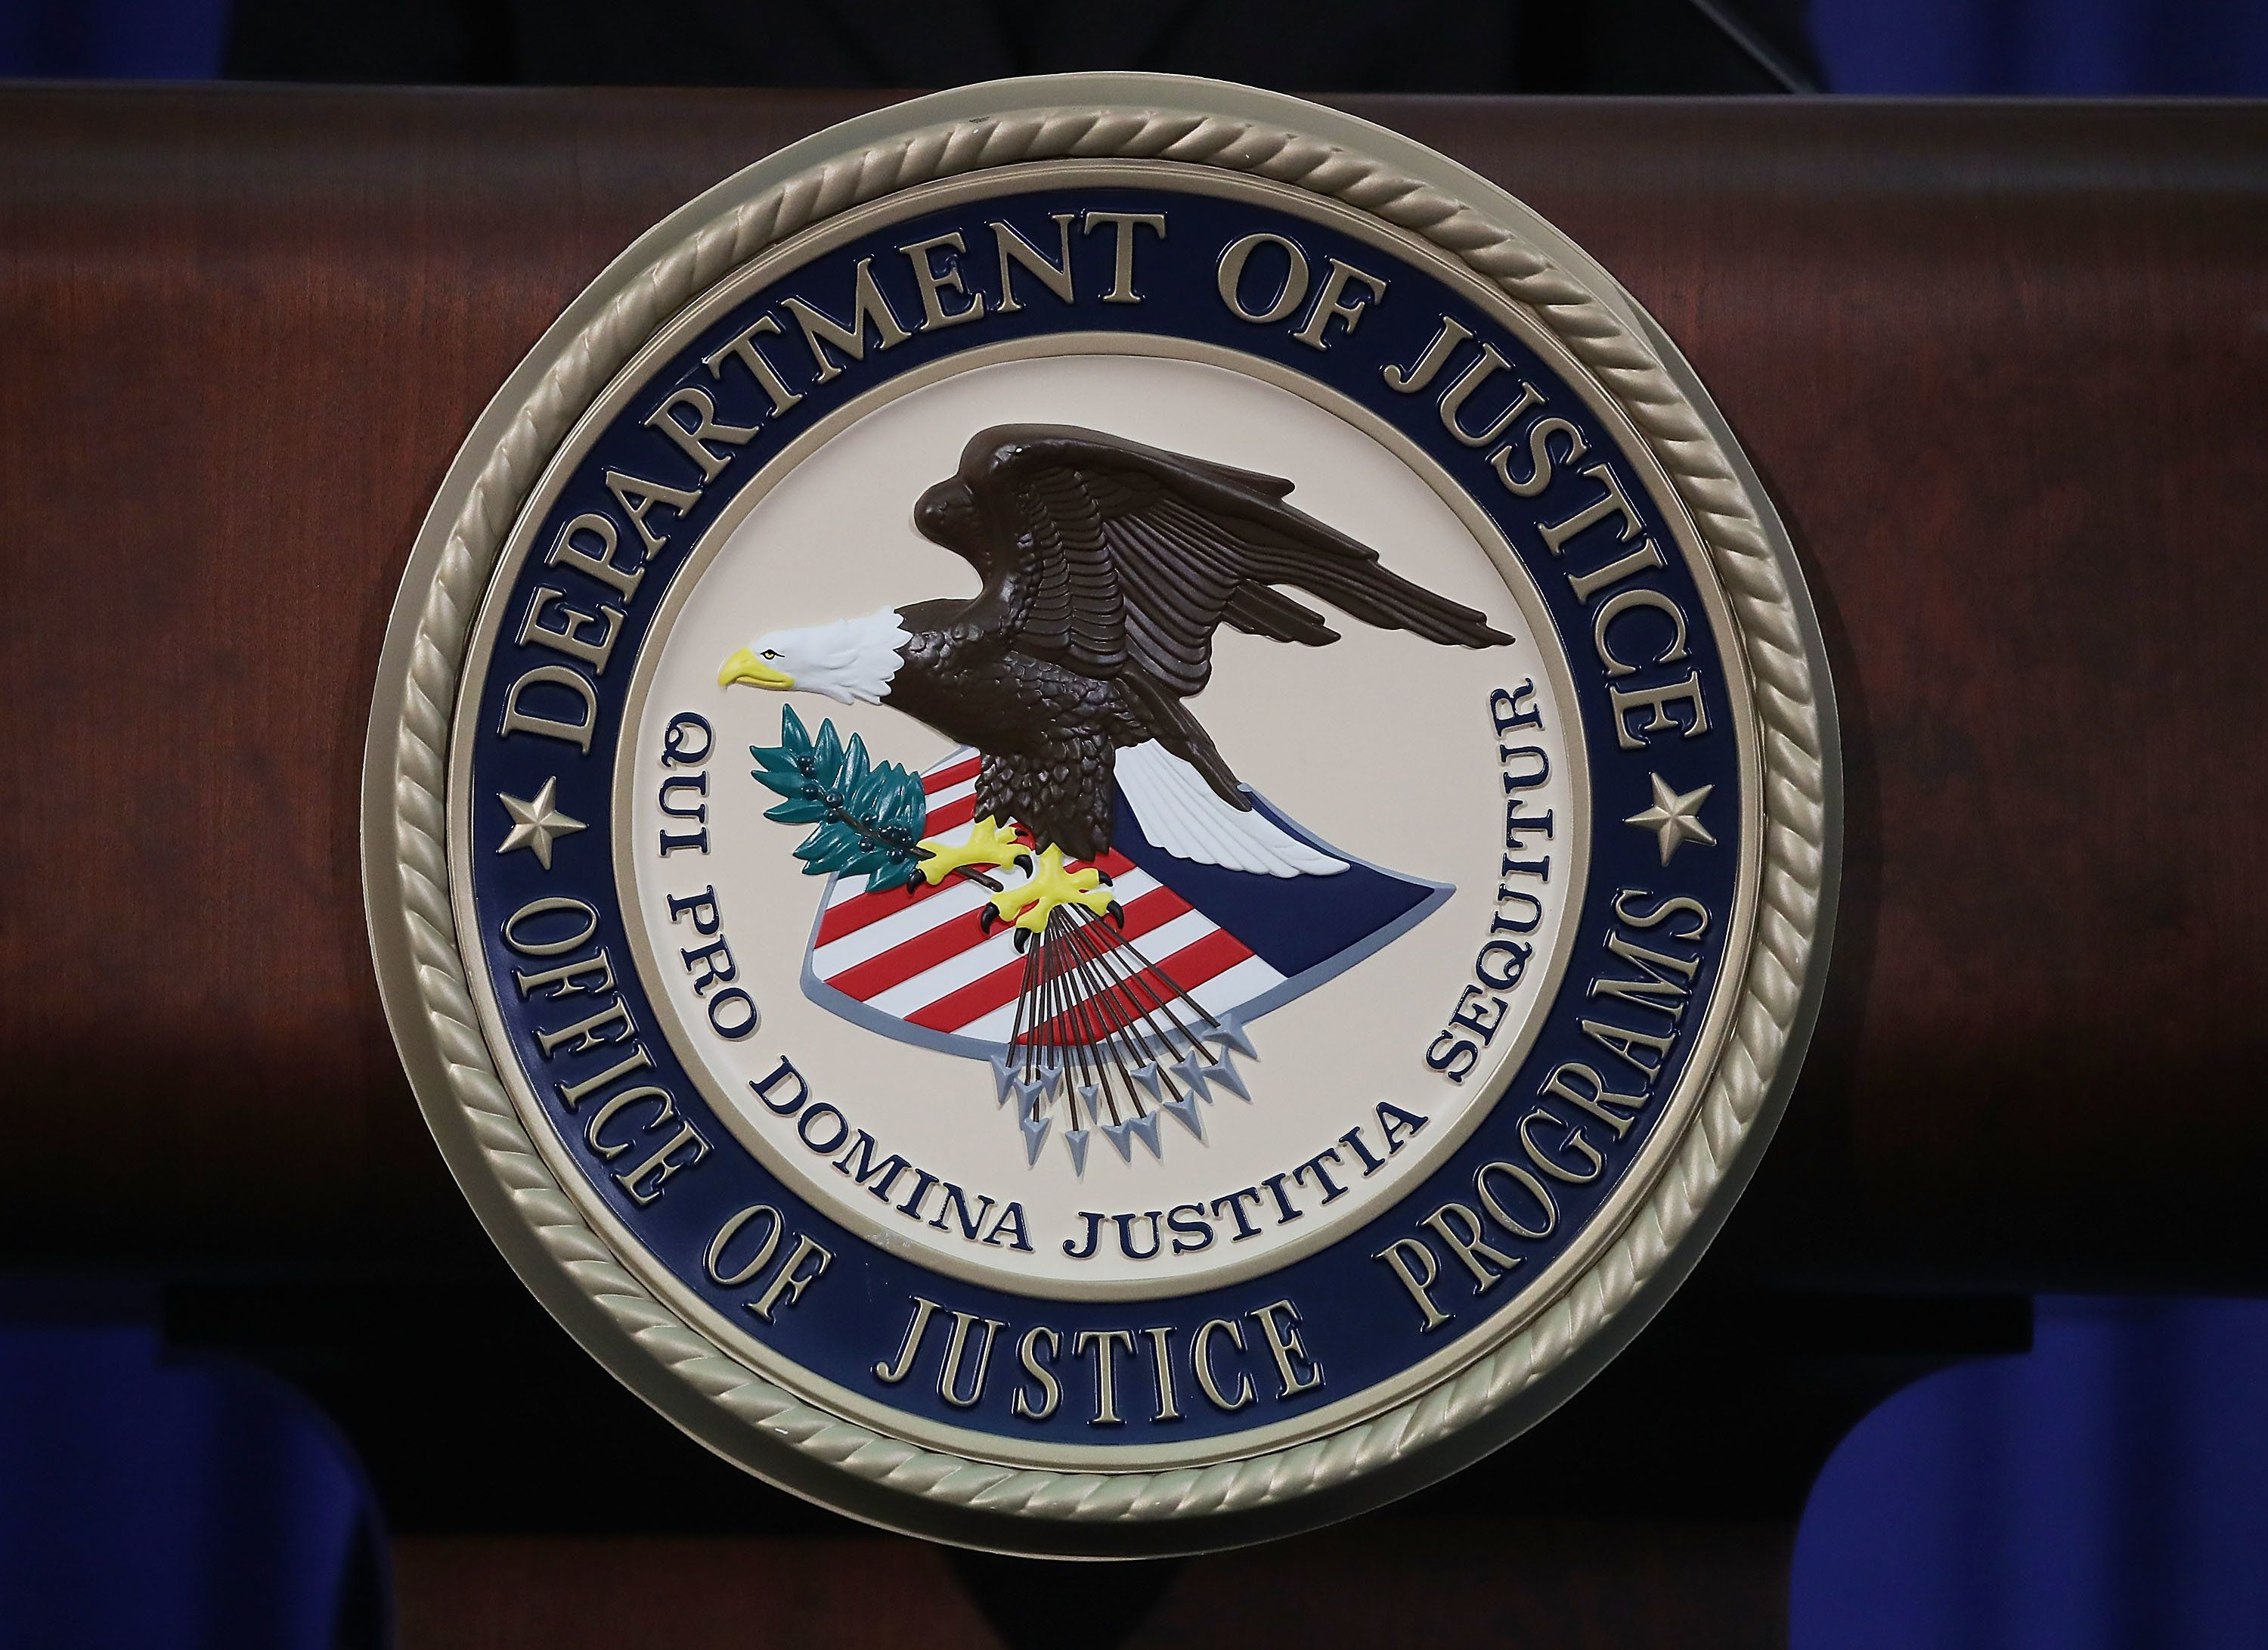 WASHINGTON, DC - JUNE 29: The Justice Department seal is seen on the lectern during a Hate Crimes Subcommittee summit on June 29, 2017 in Washington, DC. The meeting gave stakeholders the opportunity to offer imput to the committee before it makes its recommendations to the attorney general on what the Department of Justice can do to improve reporting, investigation and prosecution of hate crimes.  (Photo by Mark Wilson/Getty Images)